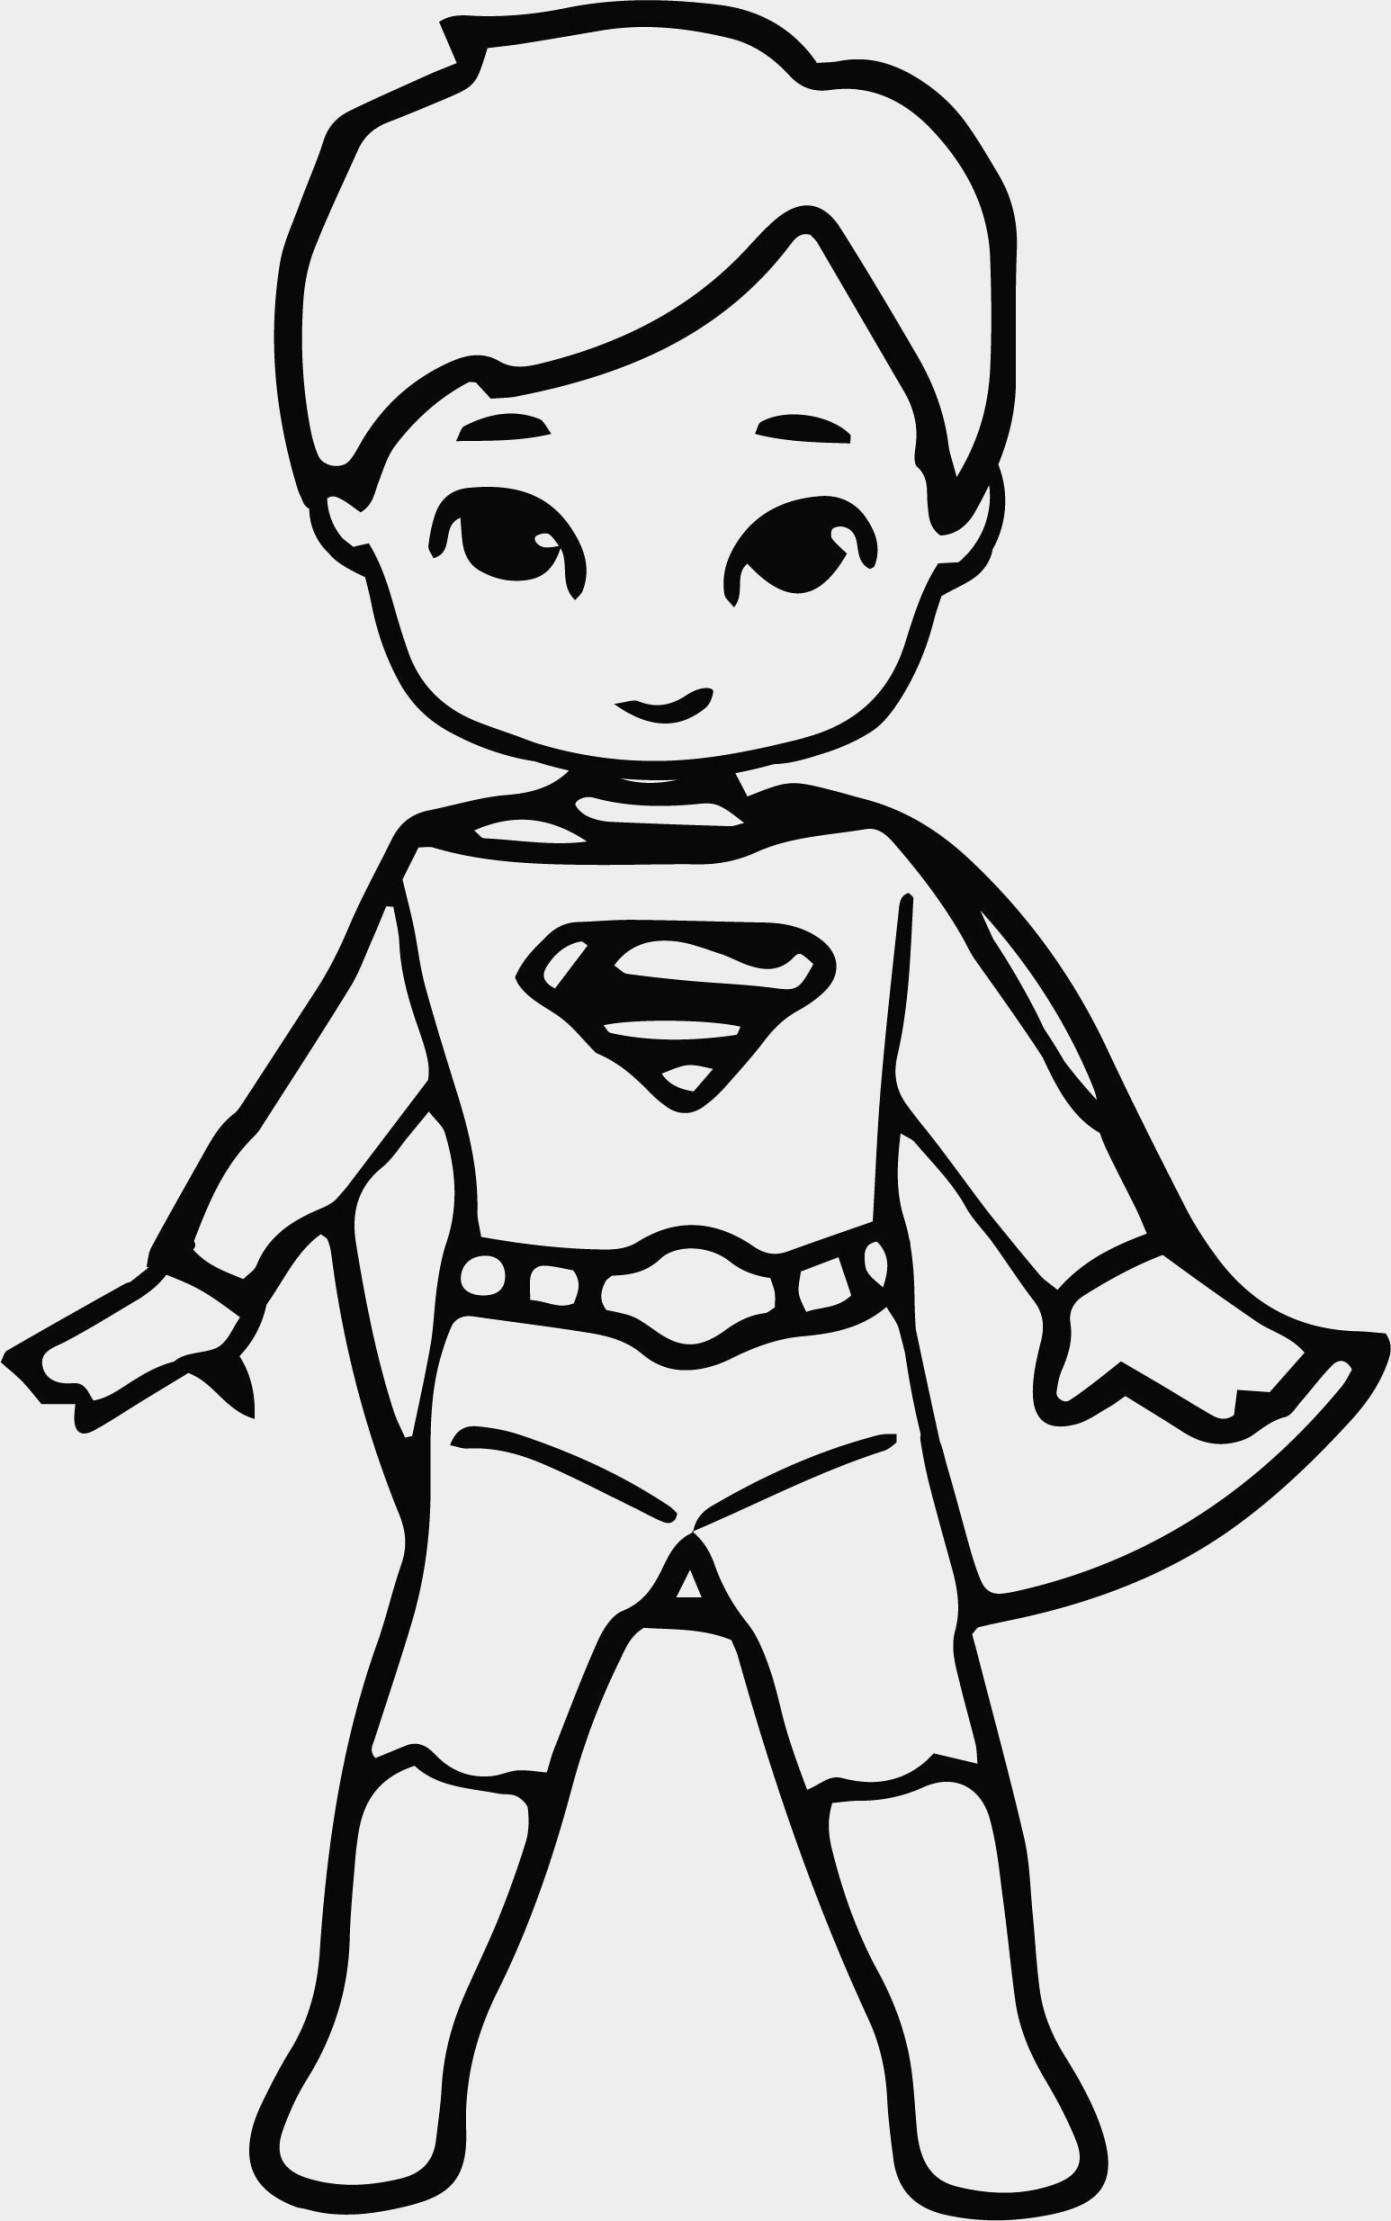 superman cartoon coloring pages - photo#22